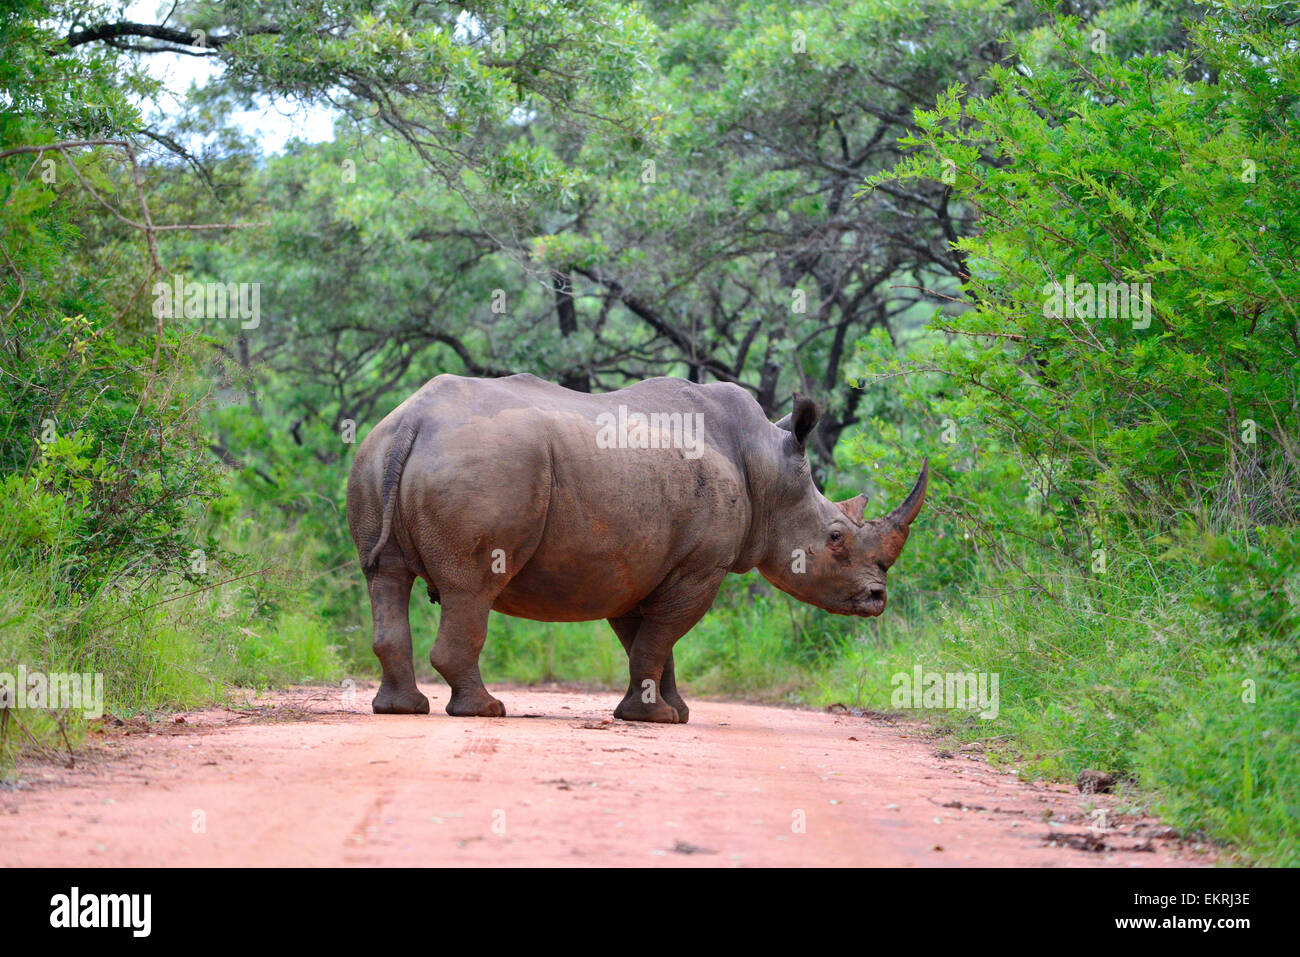 White rhino crossing road in world famous Kruger National Park, Mpumalanga, South Africa. - Stock Image